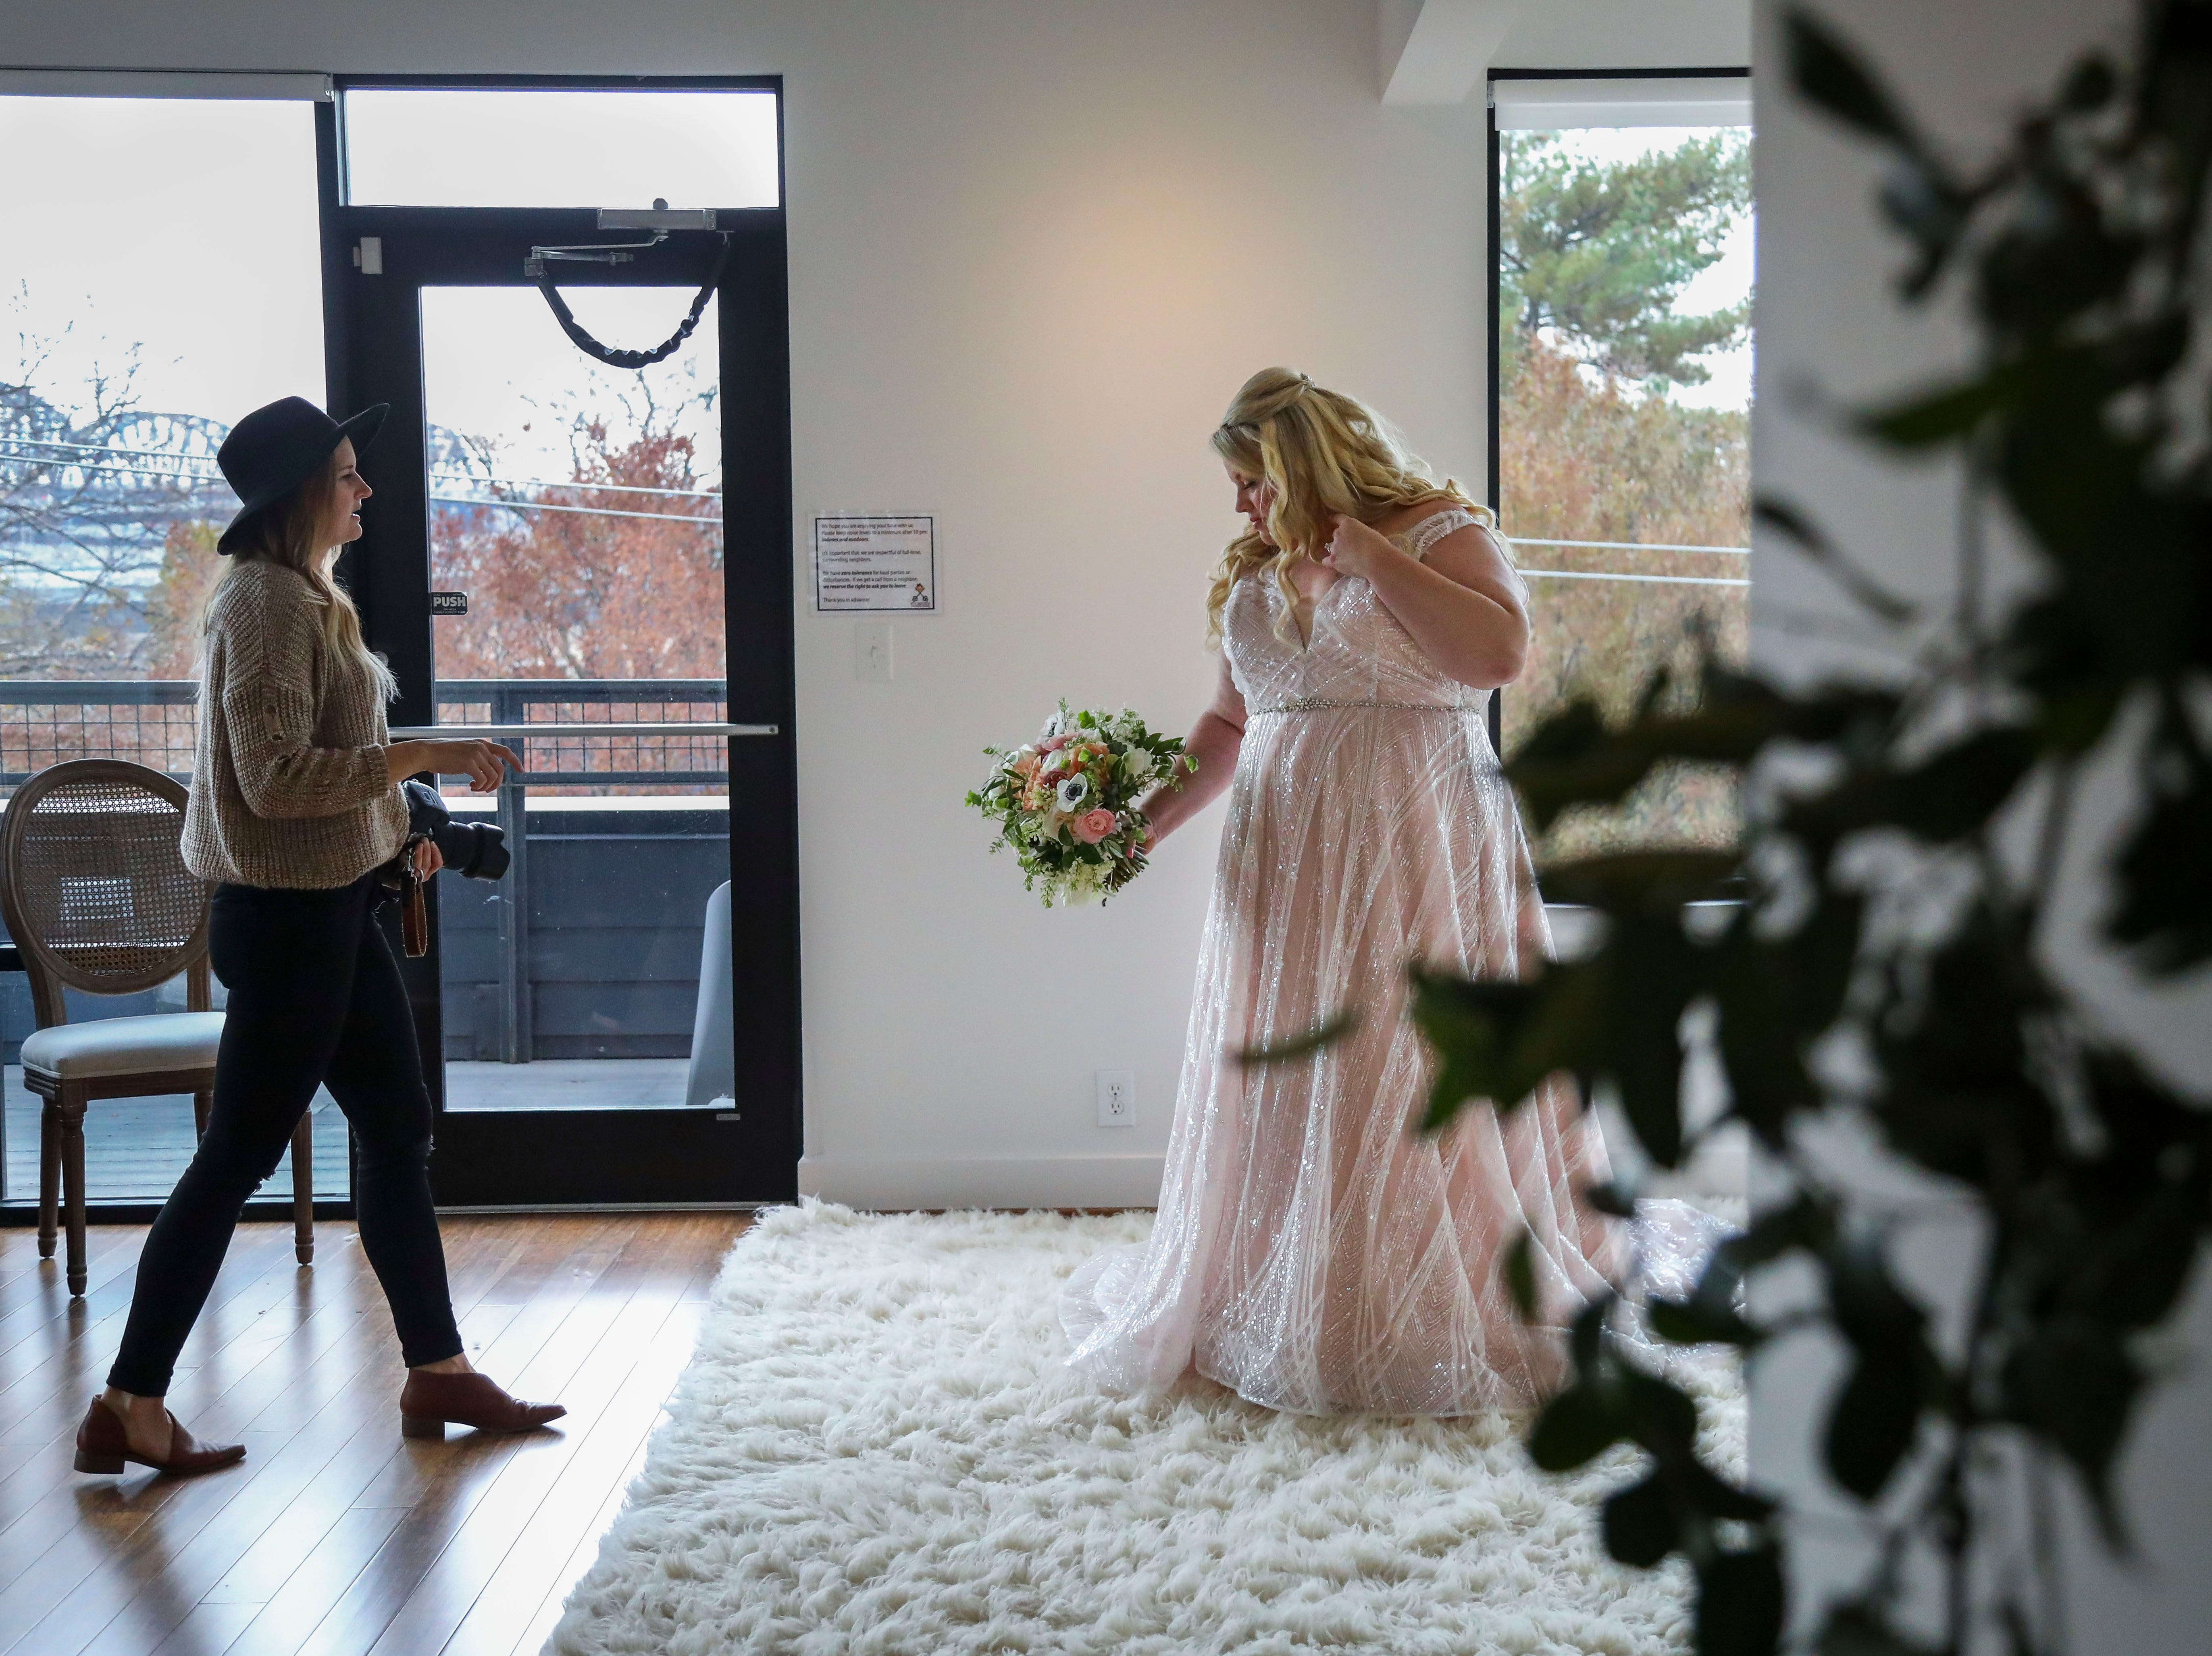 Susan Jordan of Love Hunters photographs Misty Hair, modeling a Couture Closet Bridal dress, in NuLu in Louisville, Ky. on Monday, November 12, 2018. Plus-sizes make up only 16 percent of all apparel sales, though, 67% of women in the United States wear a size 14 or above. 